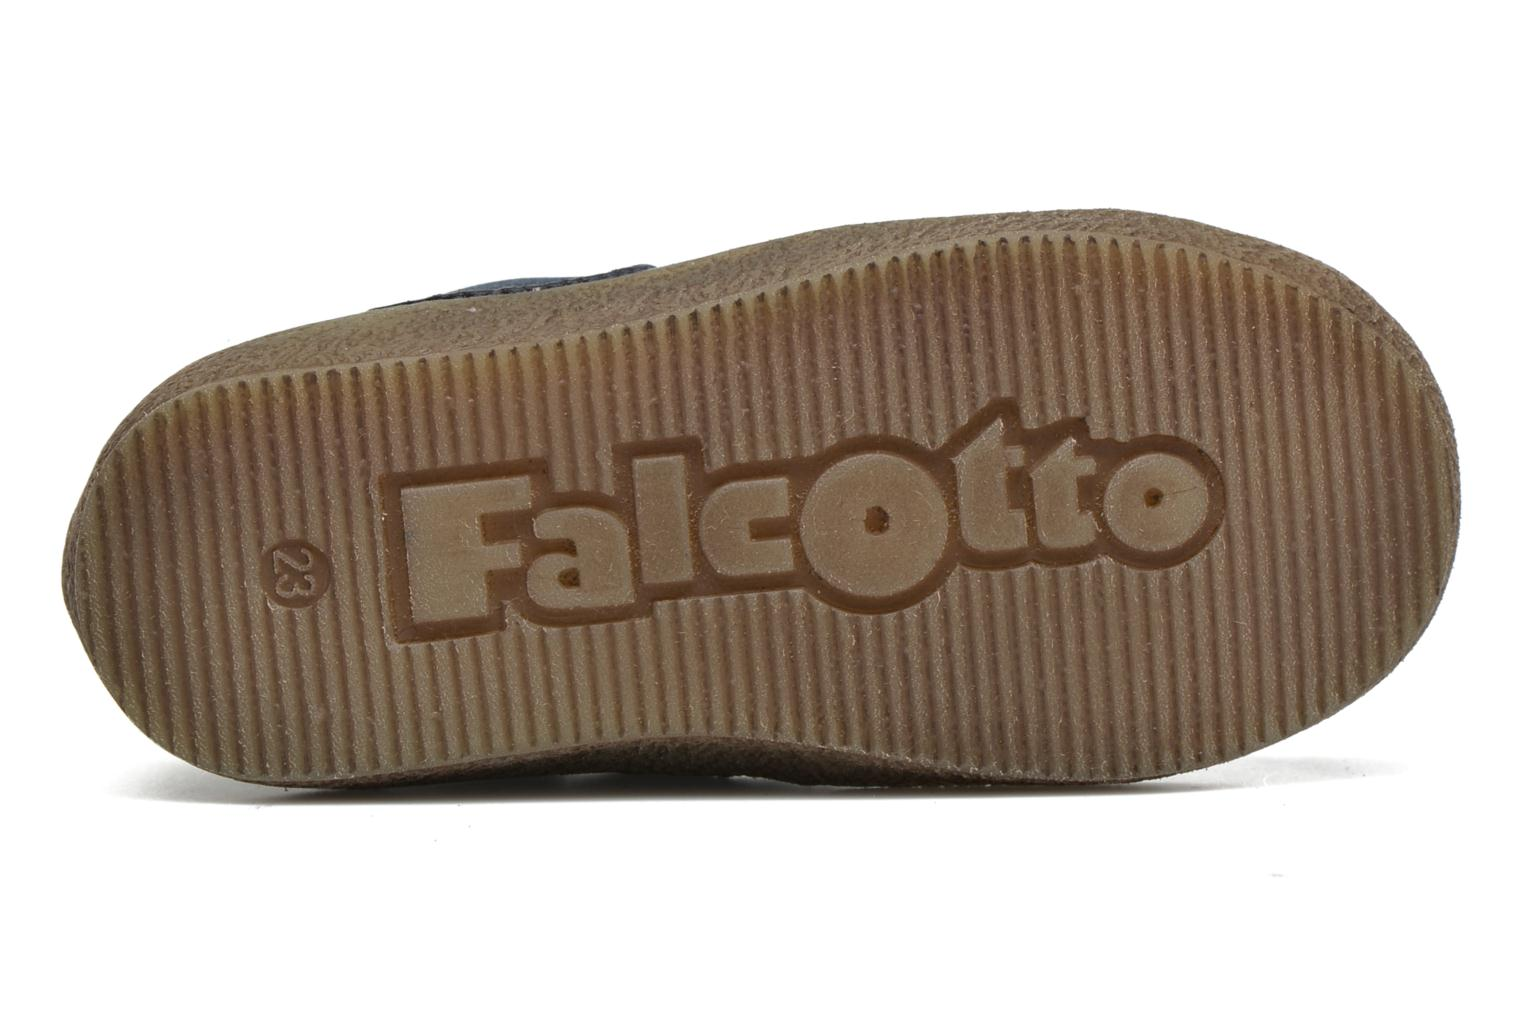 Falcotto 4178 Blue